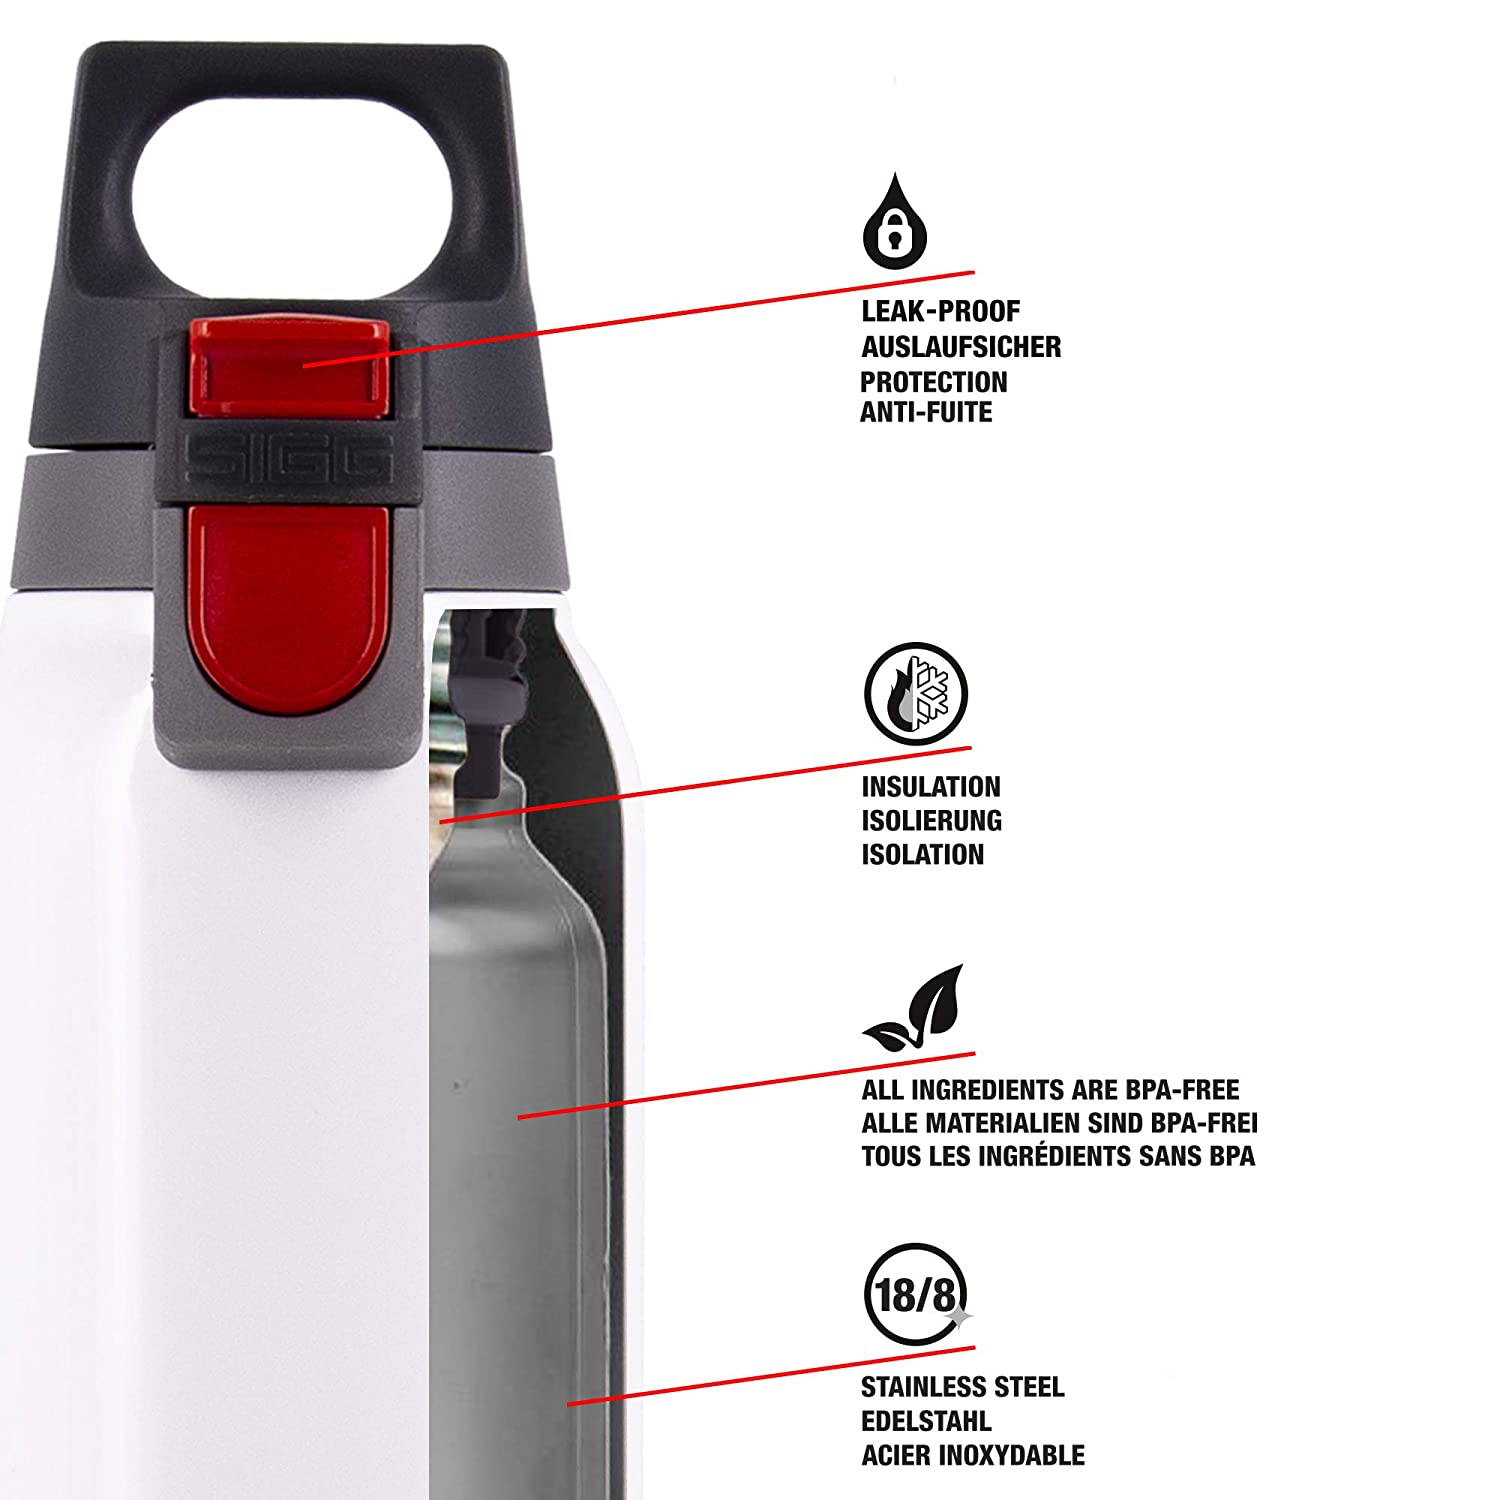 SIGG Switzerland Hot and Cold One Insulated Water Bottle